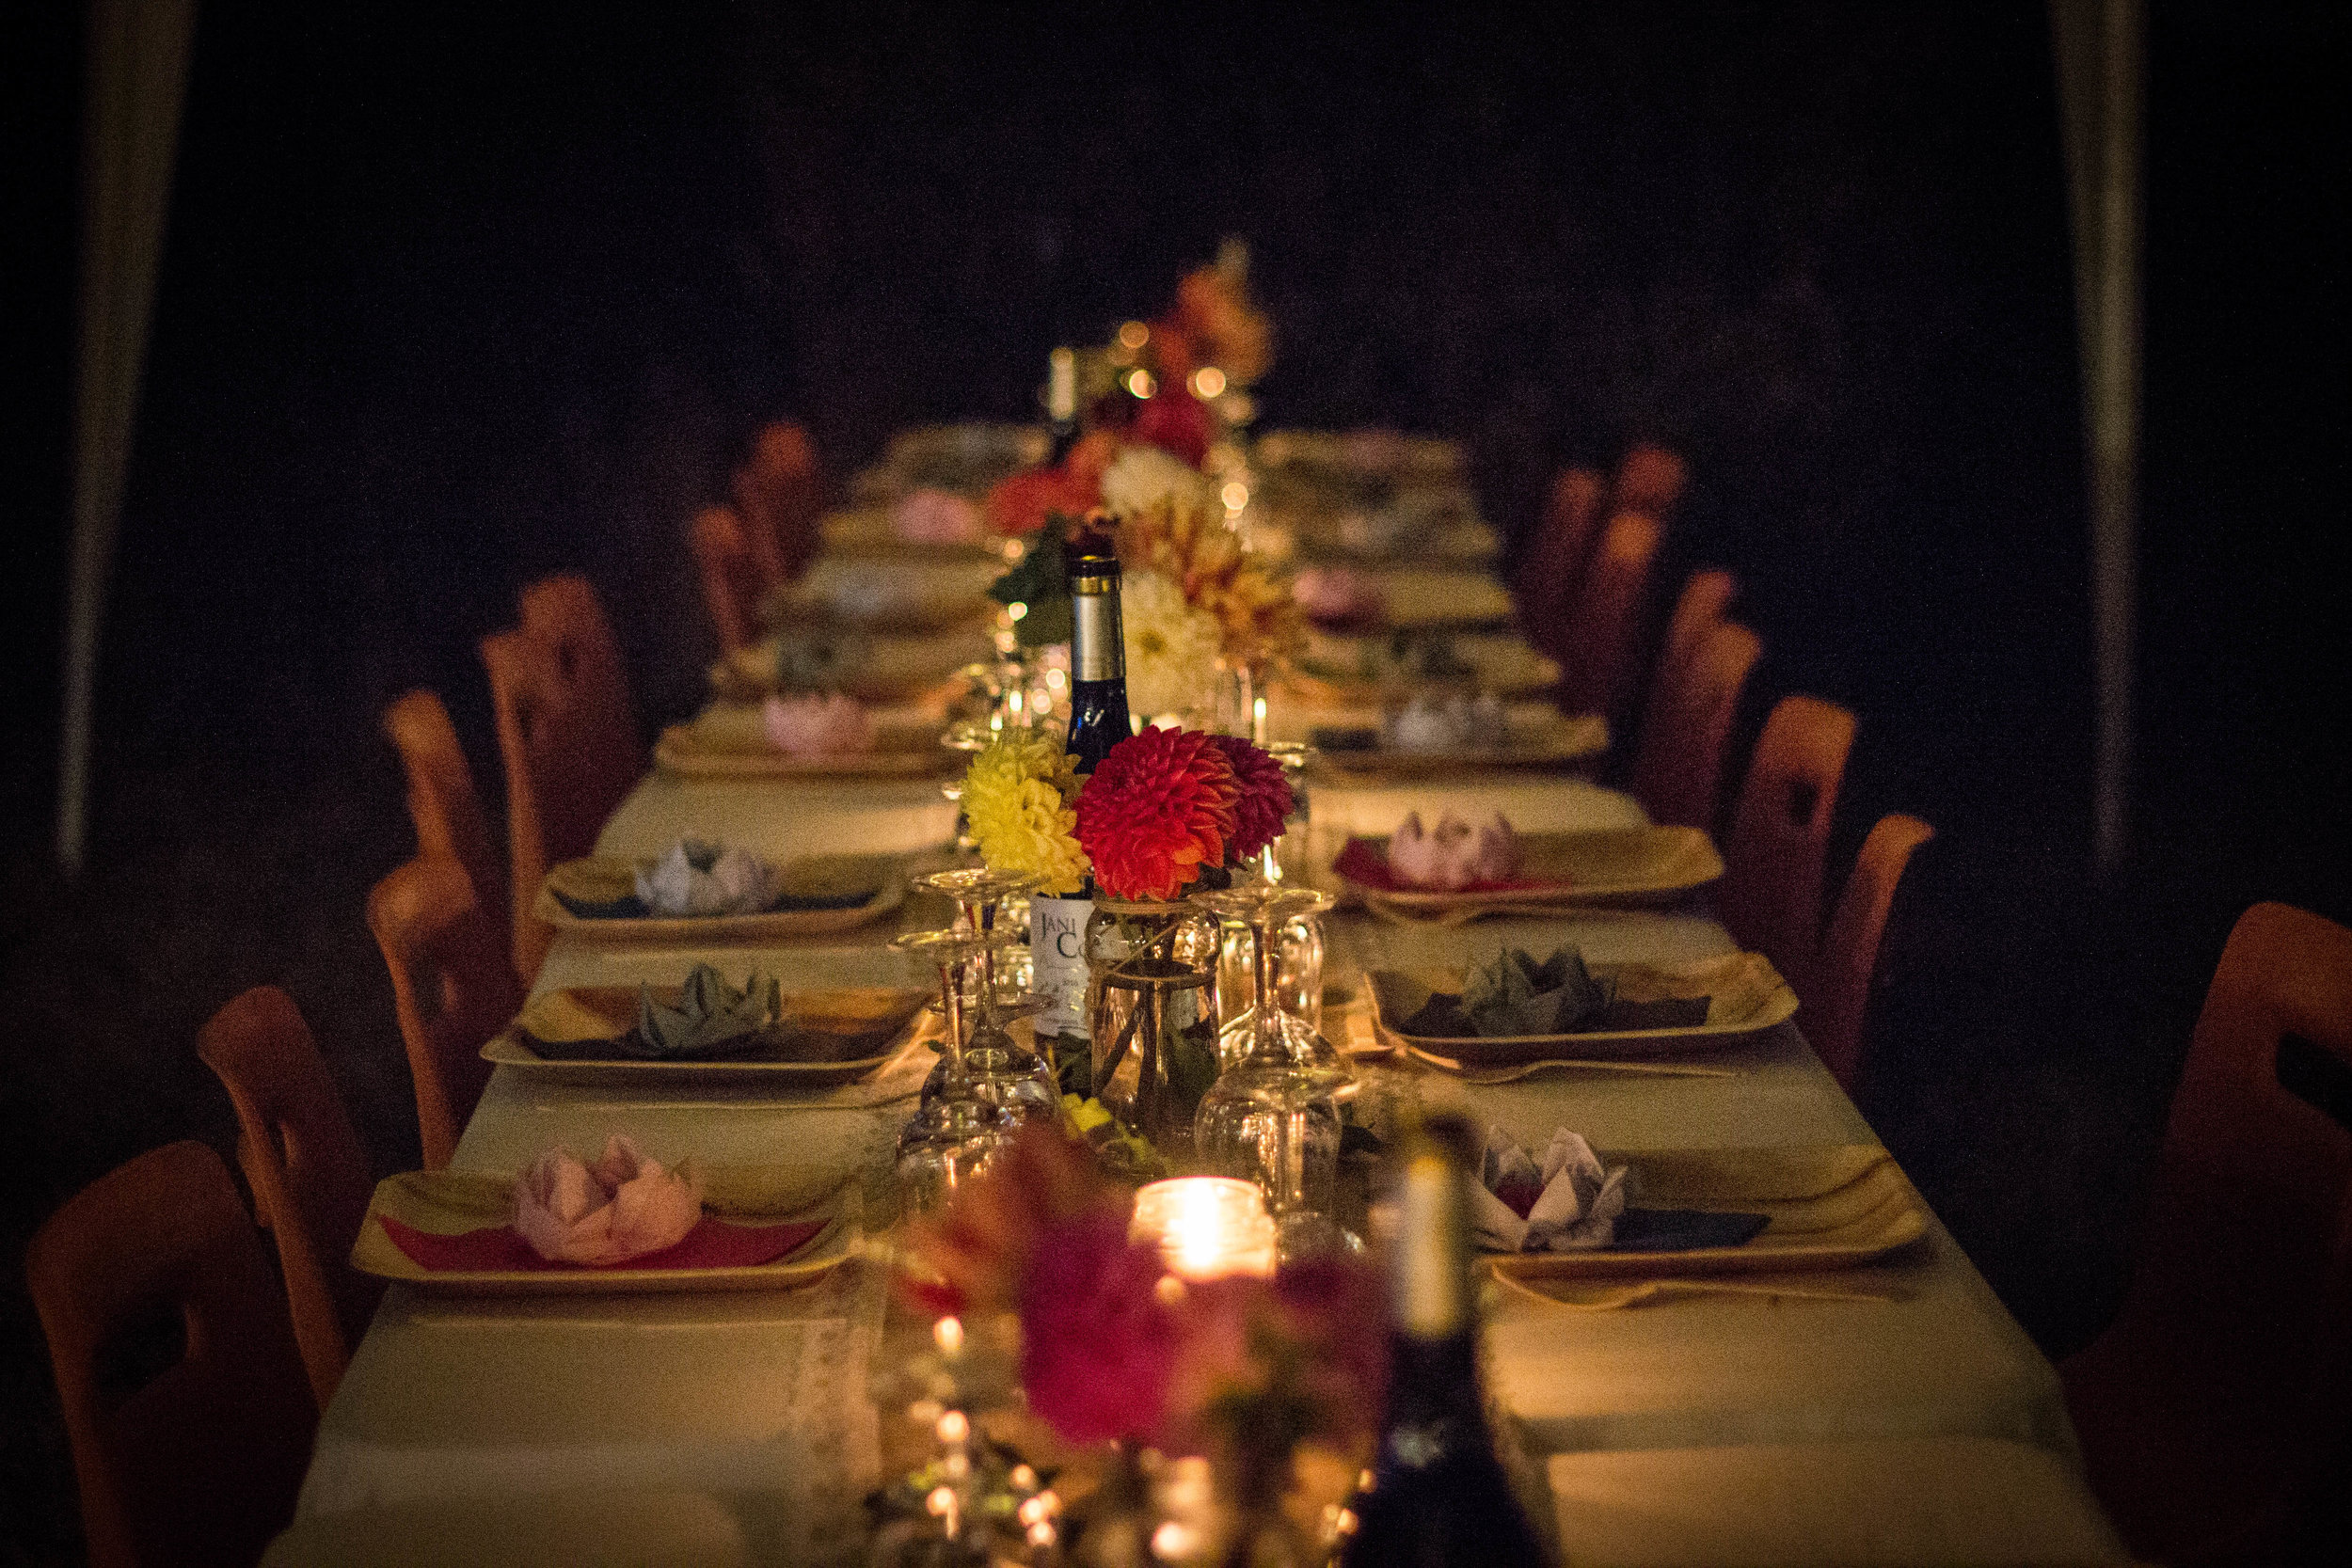 A Private Dinner Experience